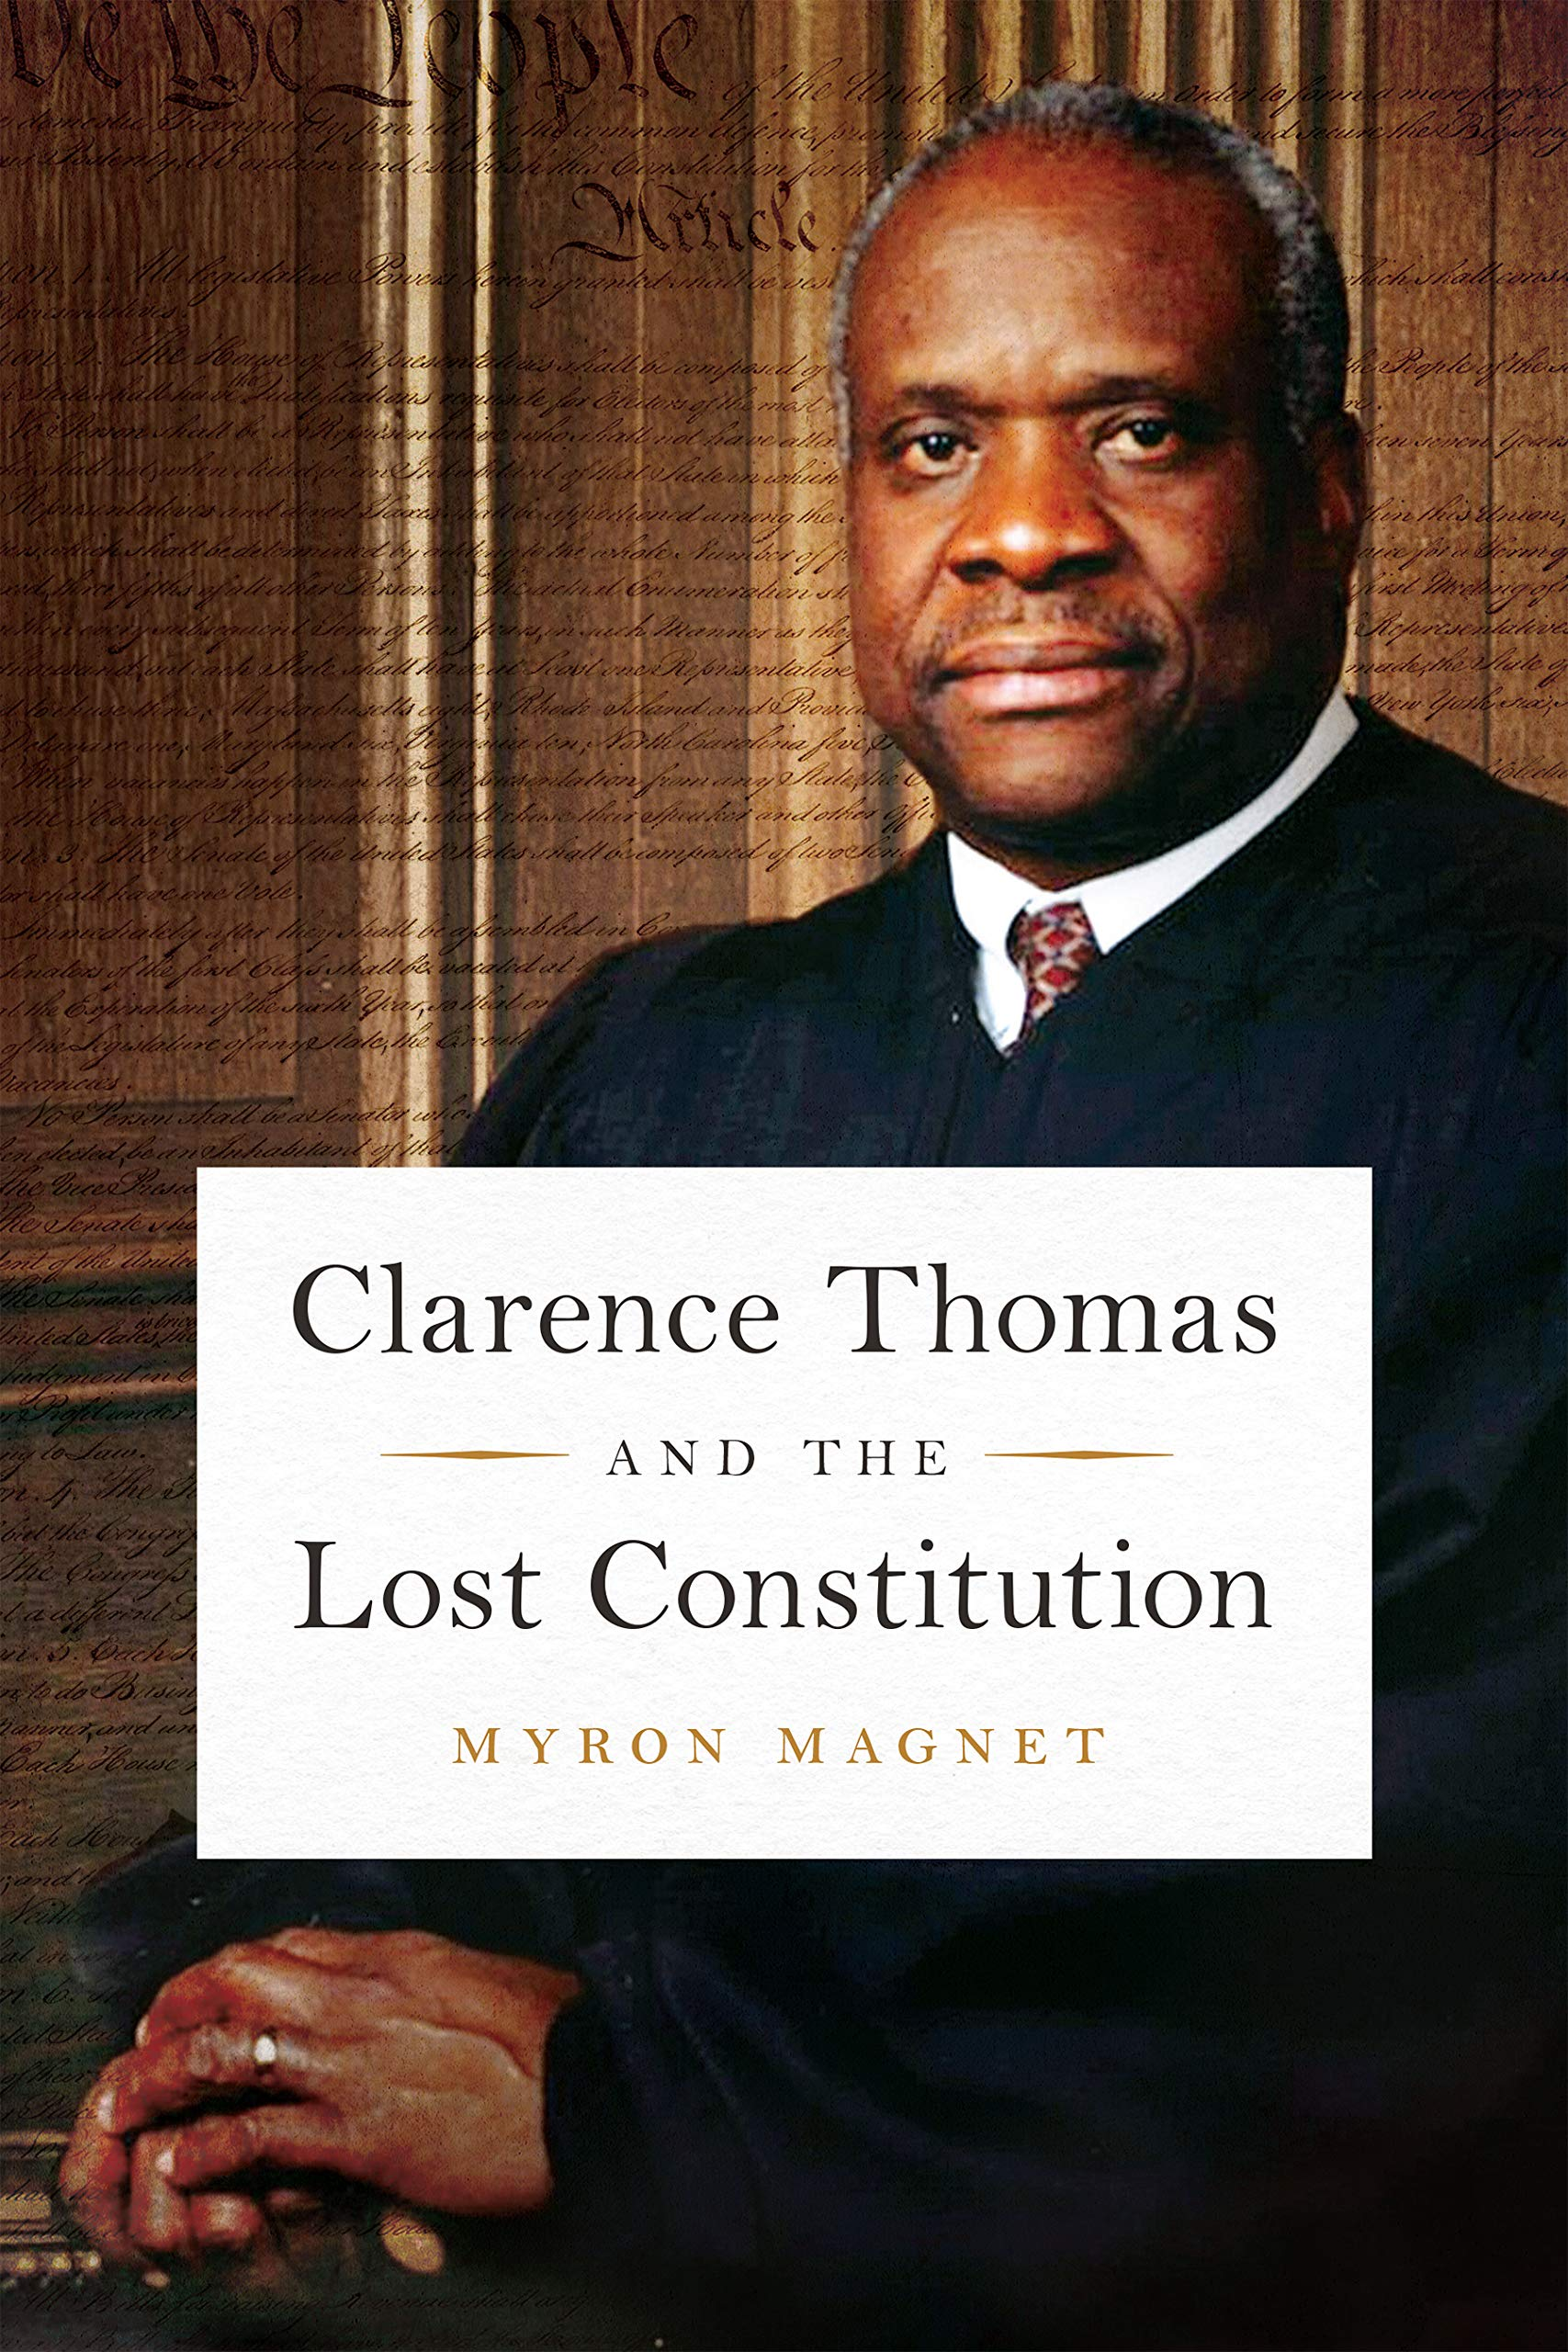 Image of Supreme Court Justice Clarence Thomas, with the text of the Constitution in the background